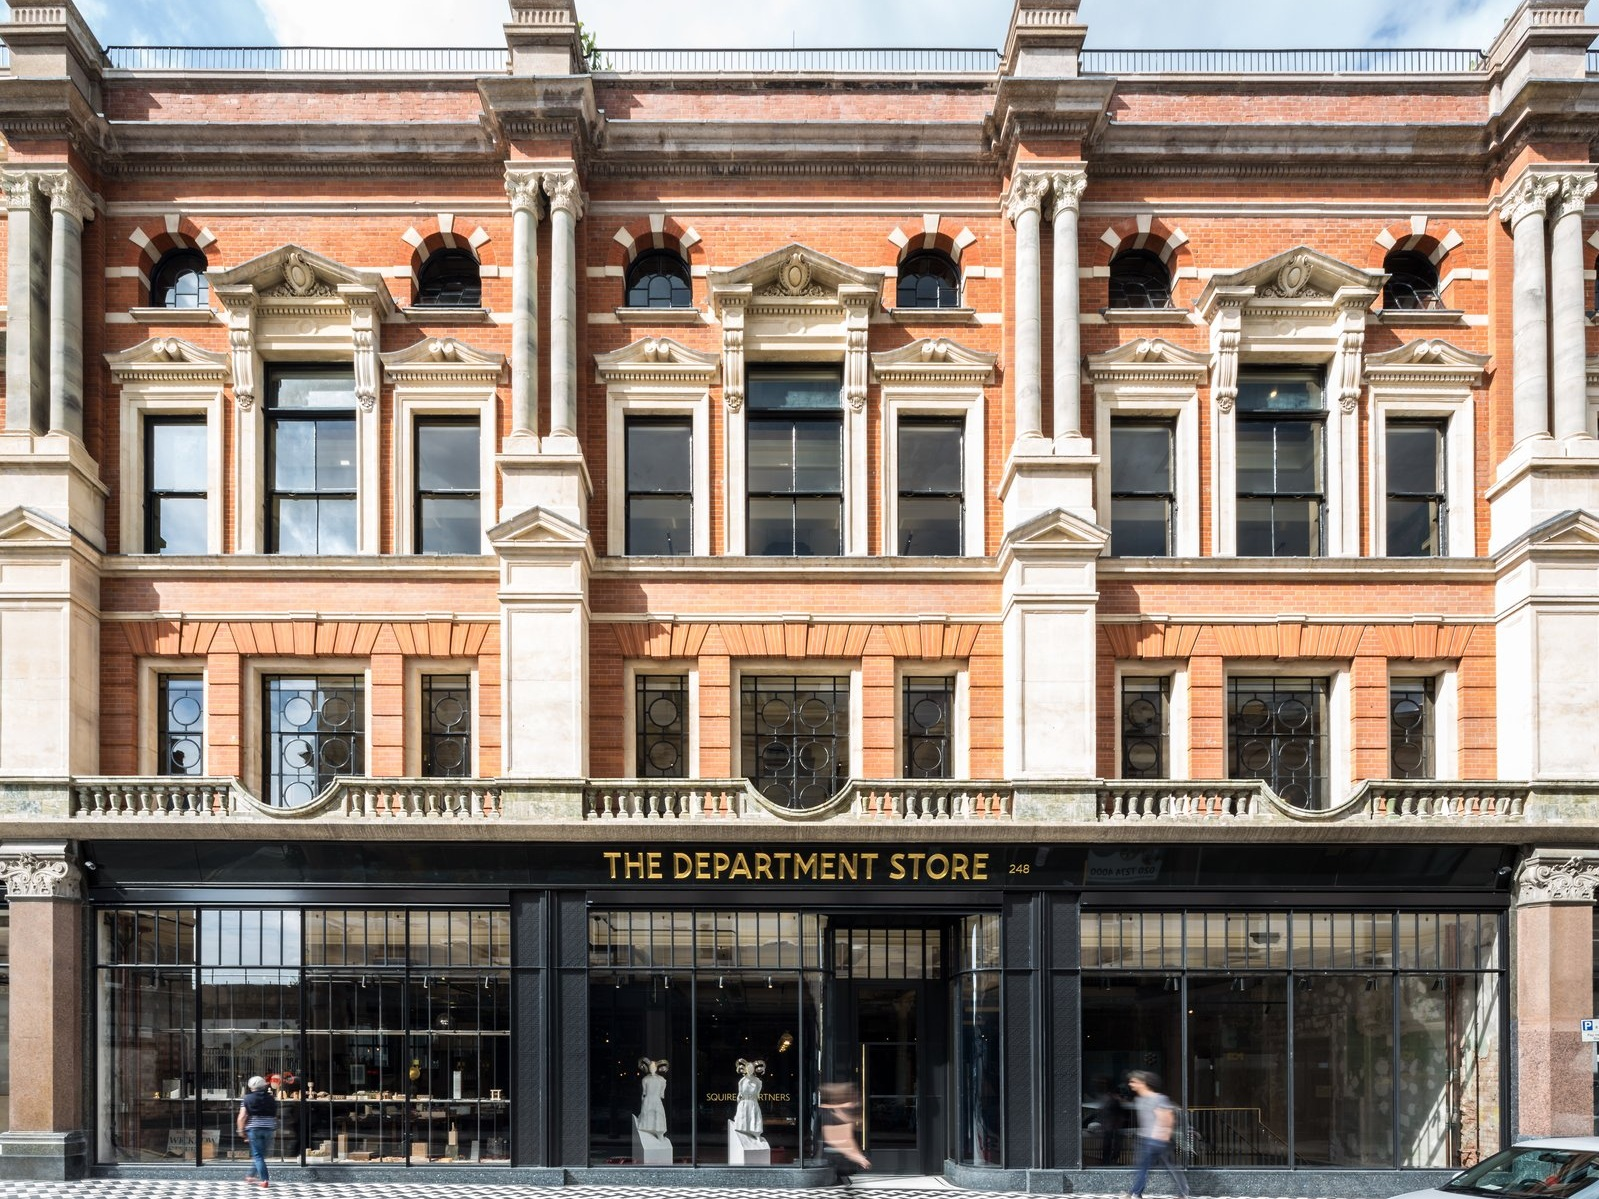 the-brixton-area-has-a-welcoming-and-generous-community-spirit-along-with-a-multitude-of-independent-retail-and-food-outlets-on-the-high-street-gledstone-says-the-department-stores-ground-level-is-open-to-independent-retailers.jpg